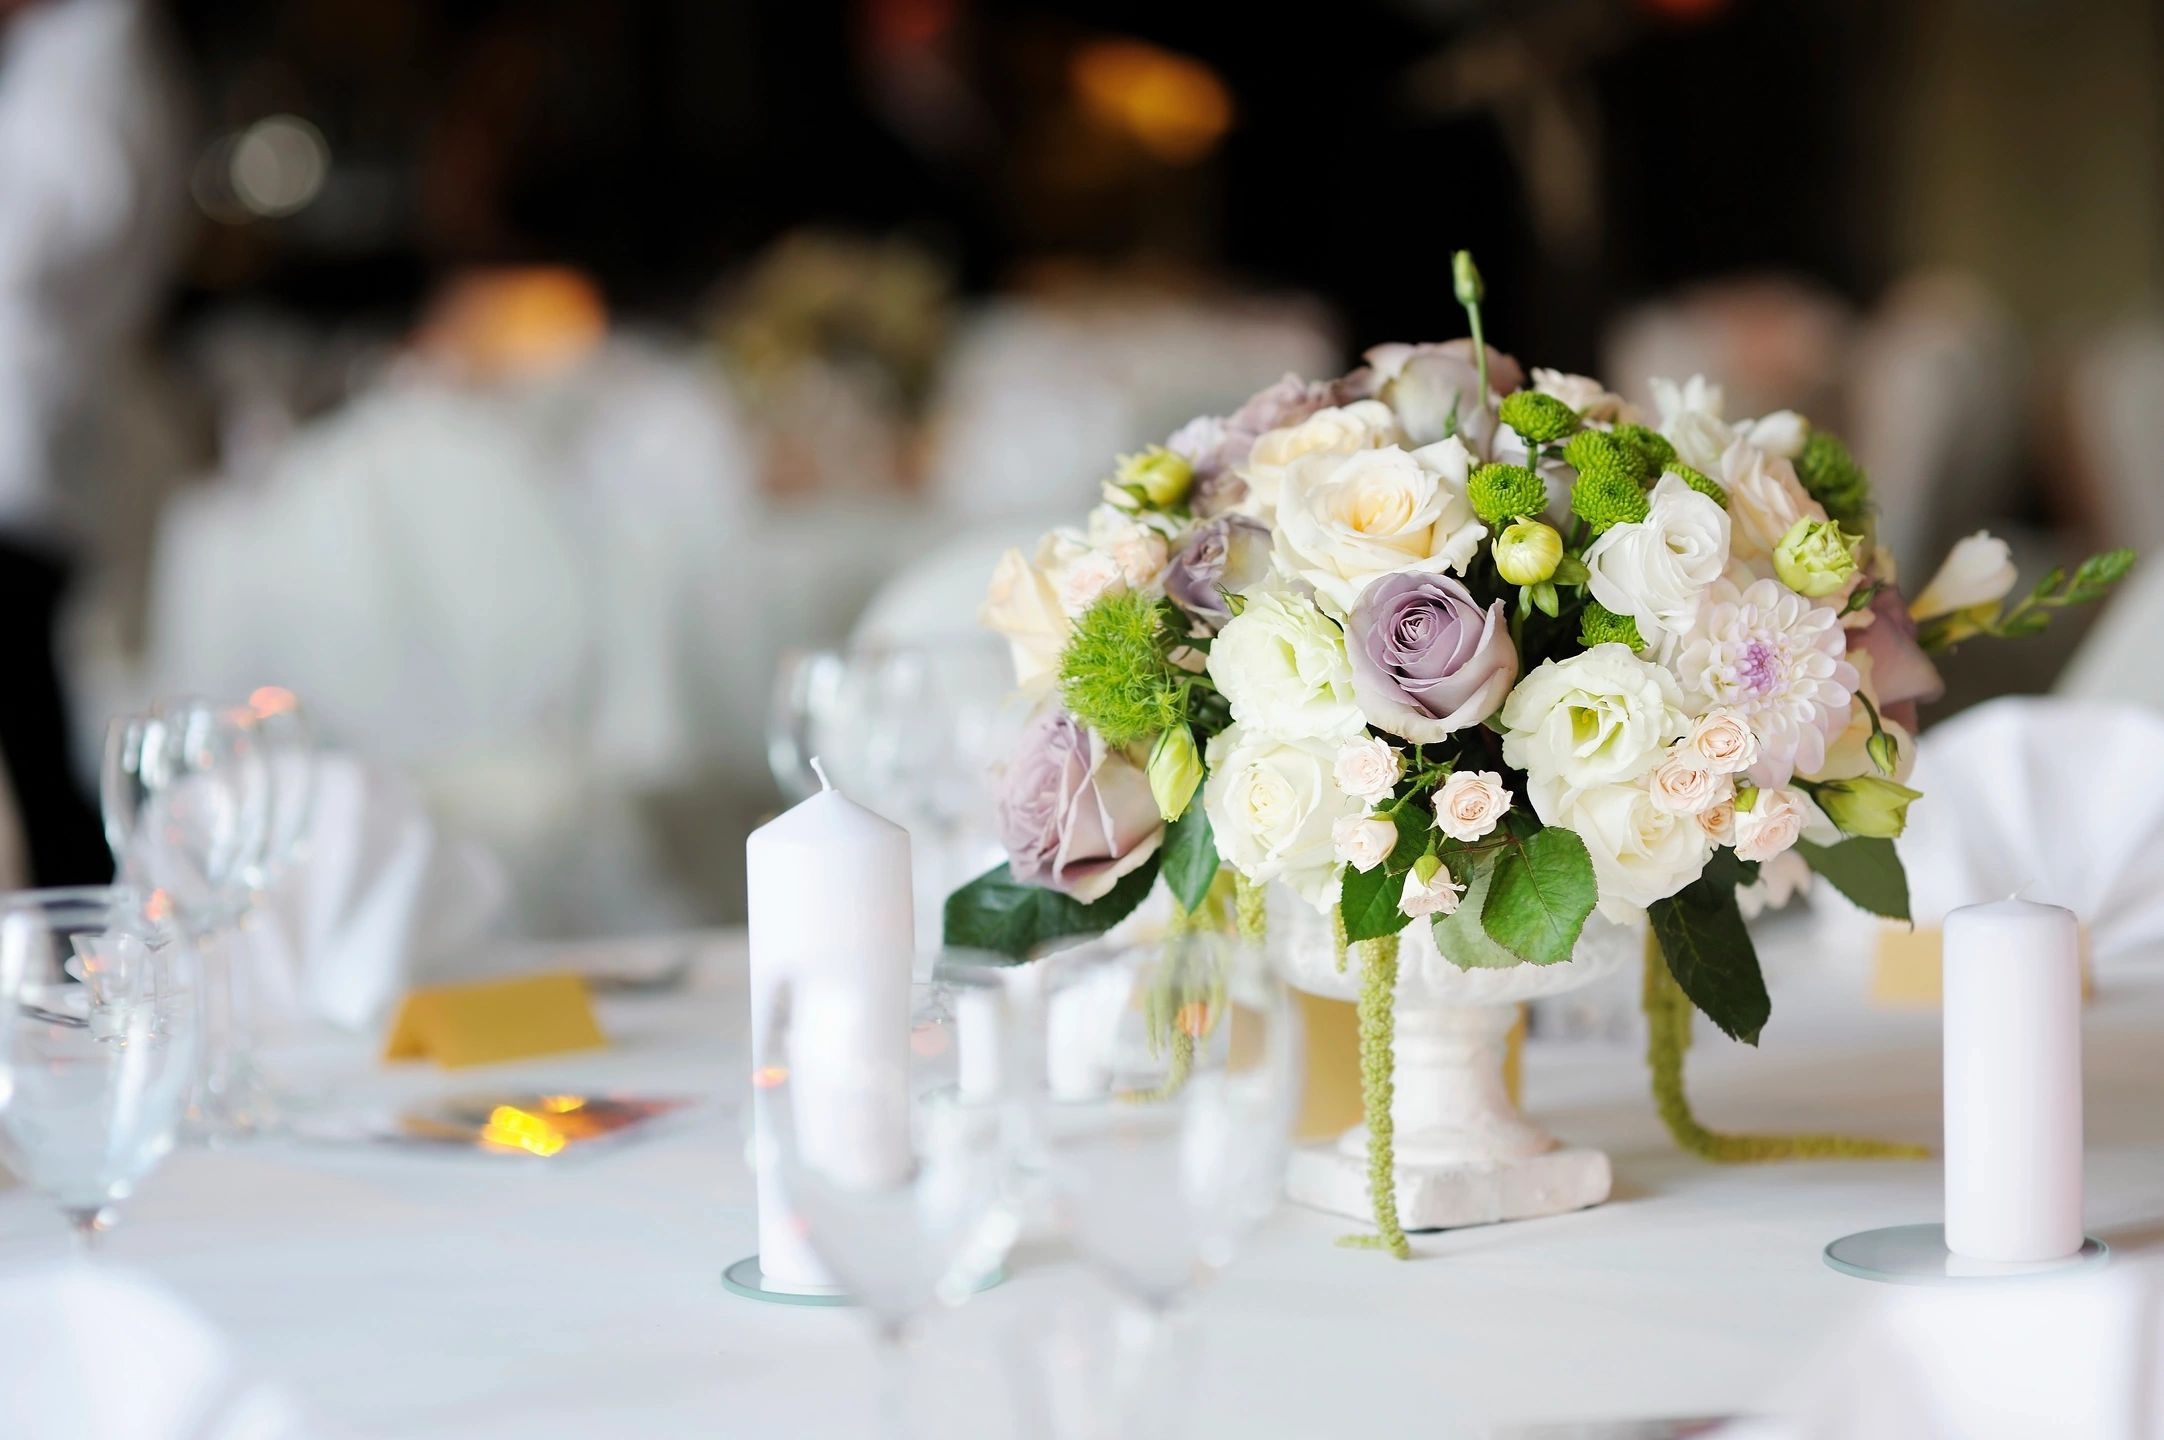 Wedding Reception Catering in Chicago. Perfect for lofts and private event venues.